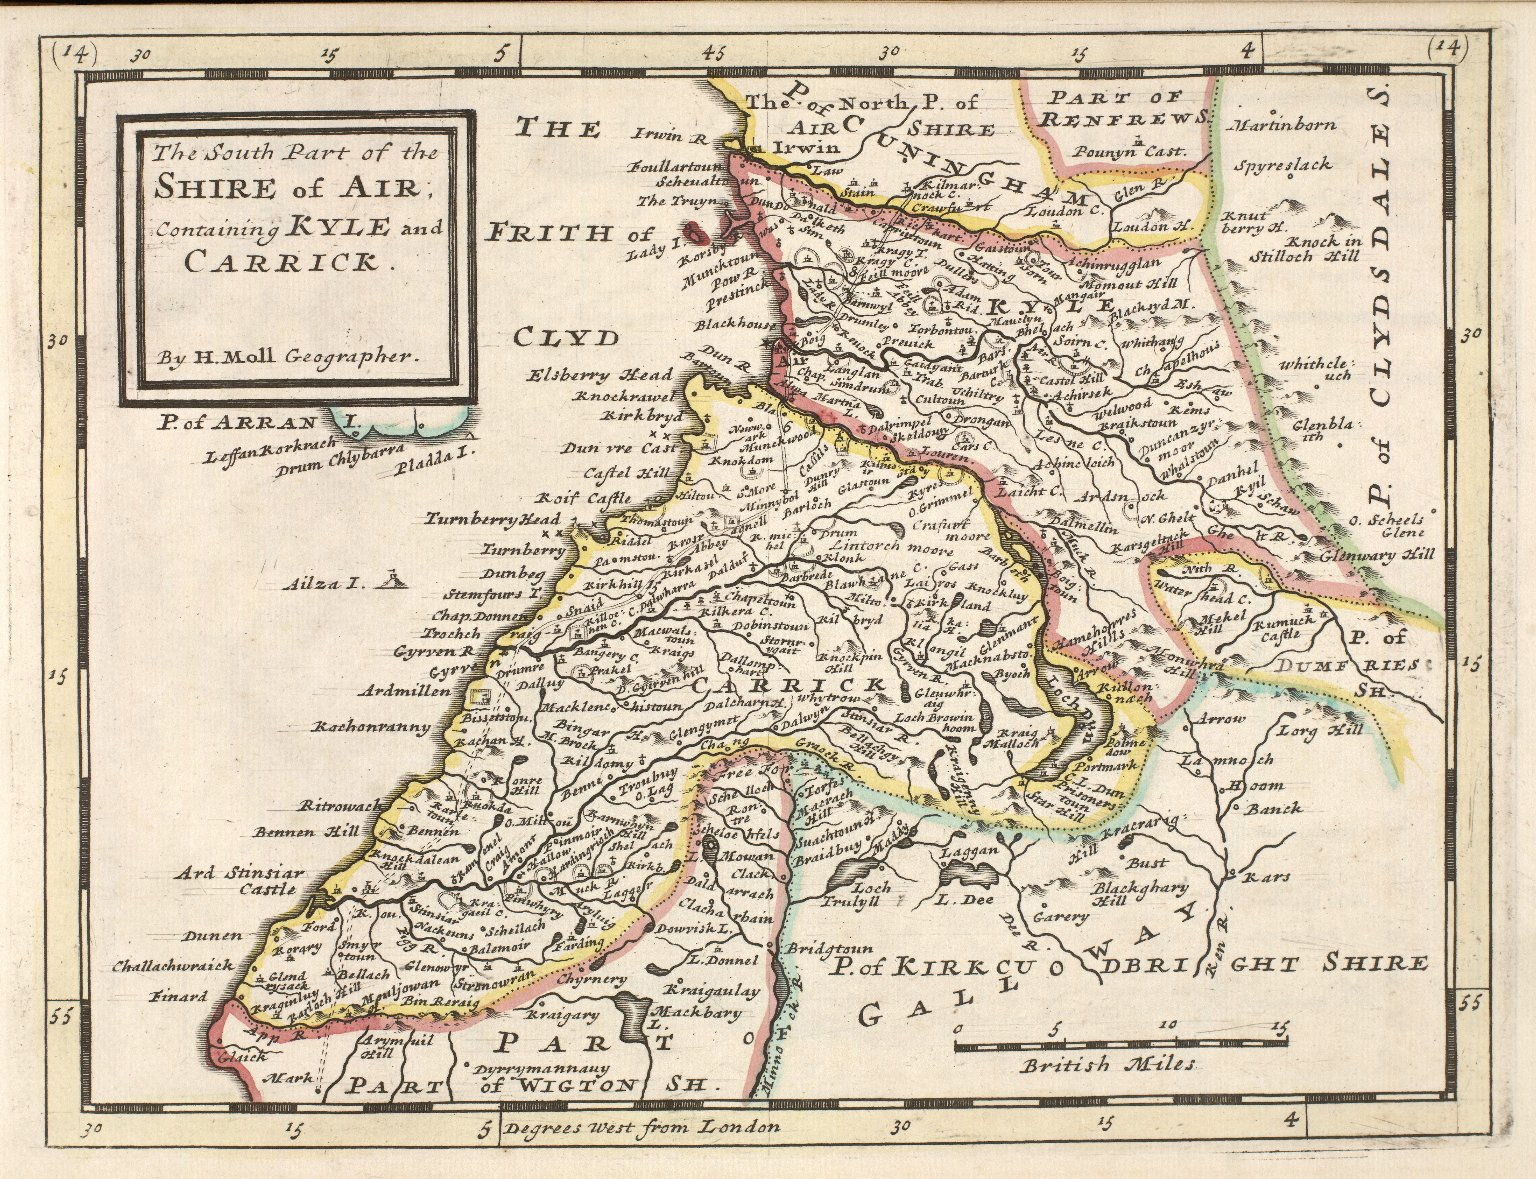 The South Part of the Shire of Air; Containing Kyle and Carrick. [1 of 1]